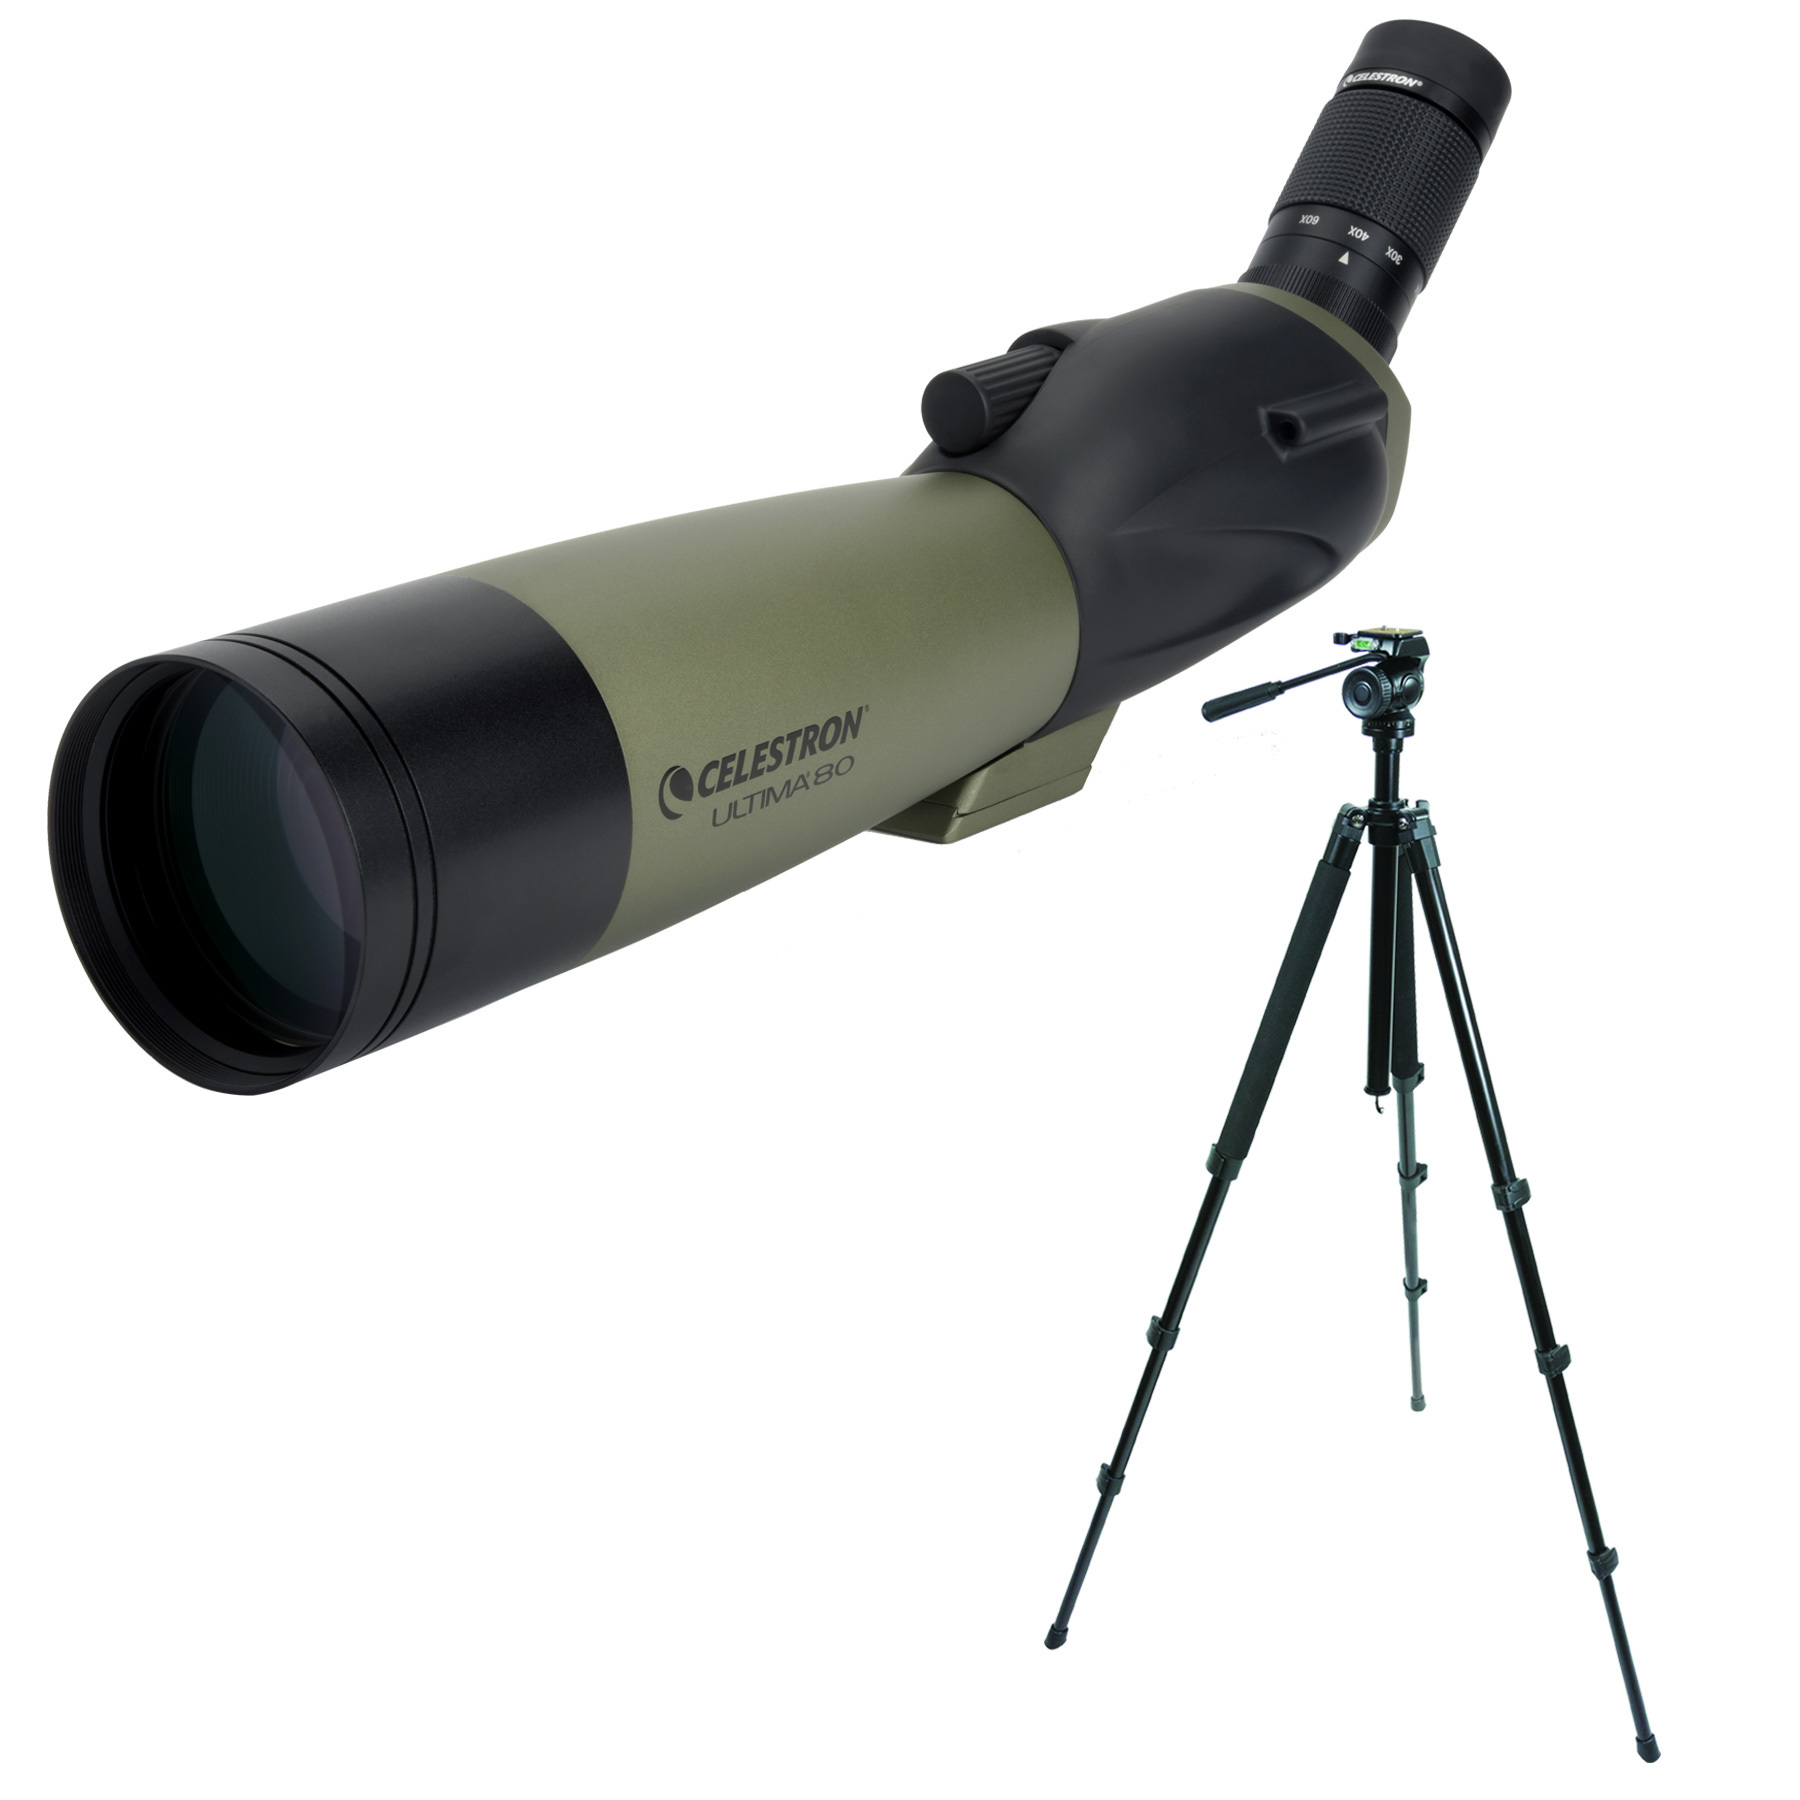 Celestron Ultima 80mm Spotting Scope (Angled Viewing) and TrailSeeker Tripod